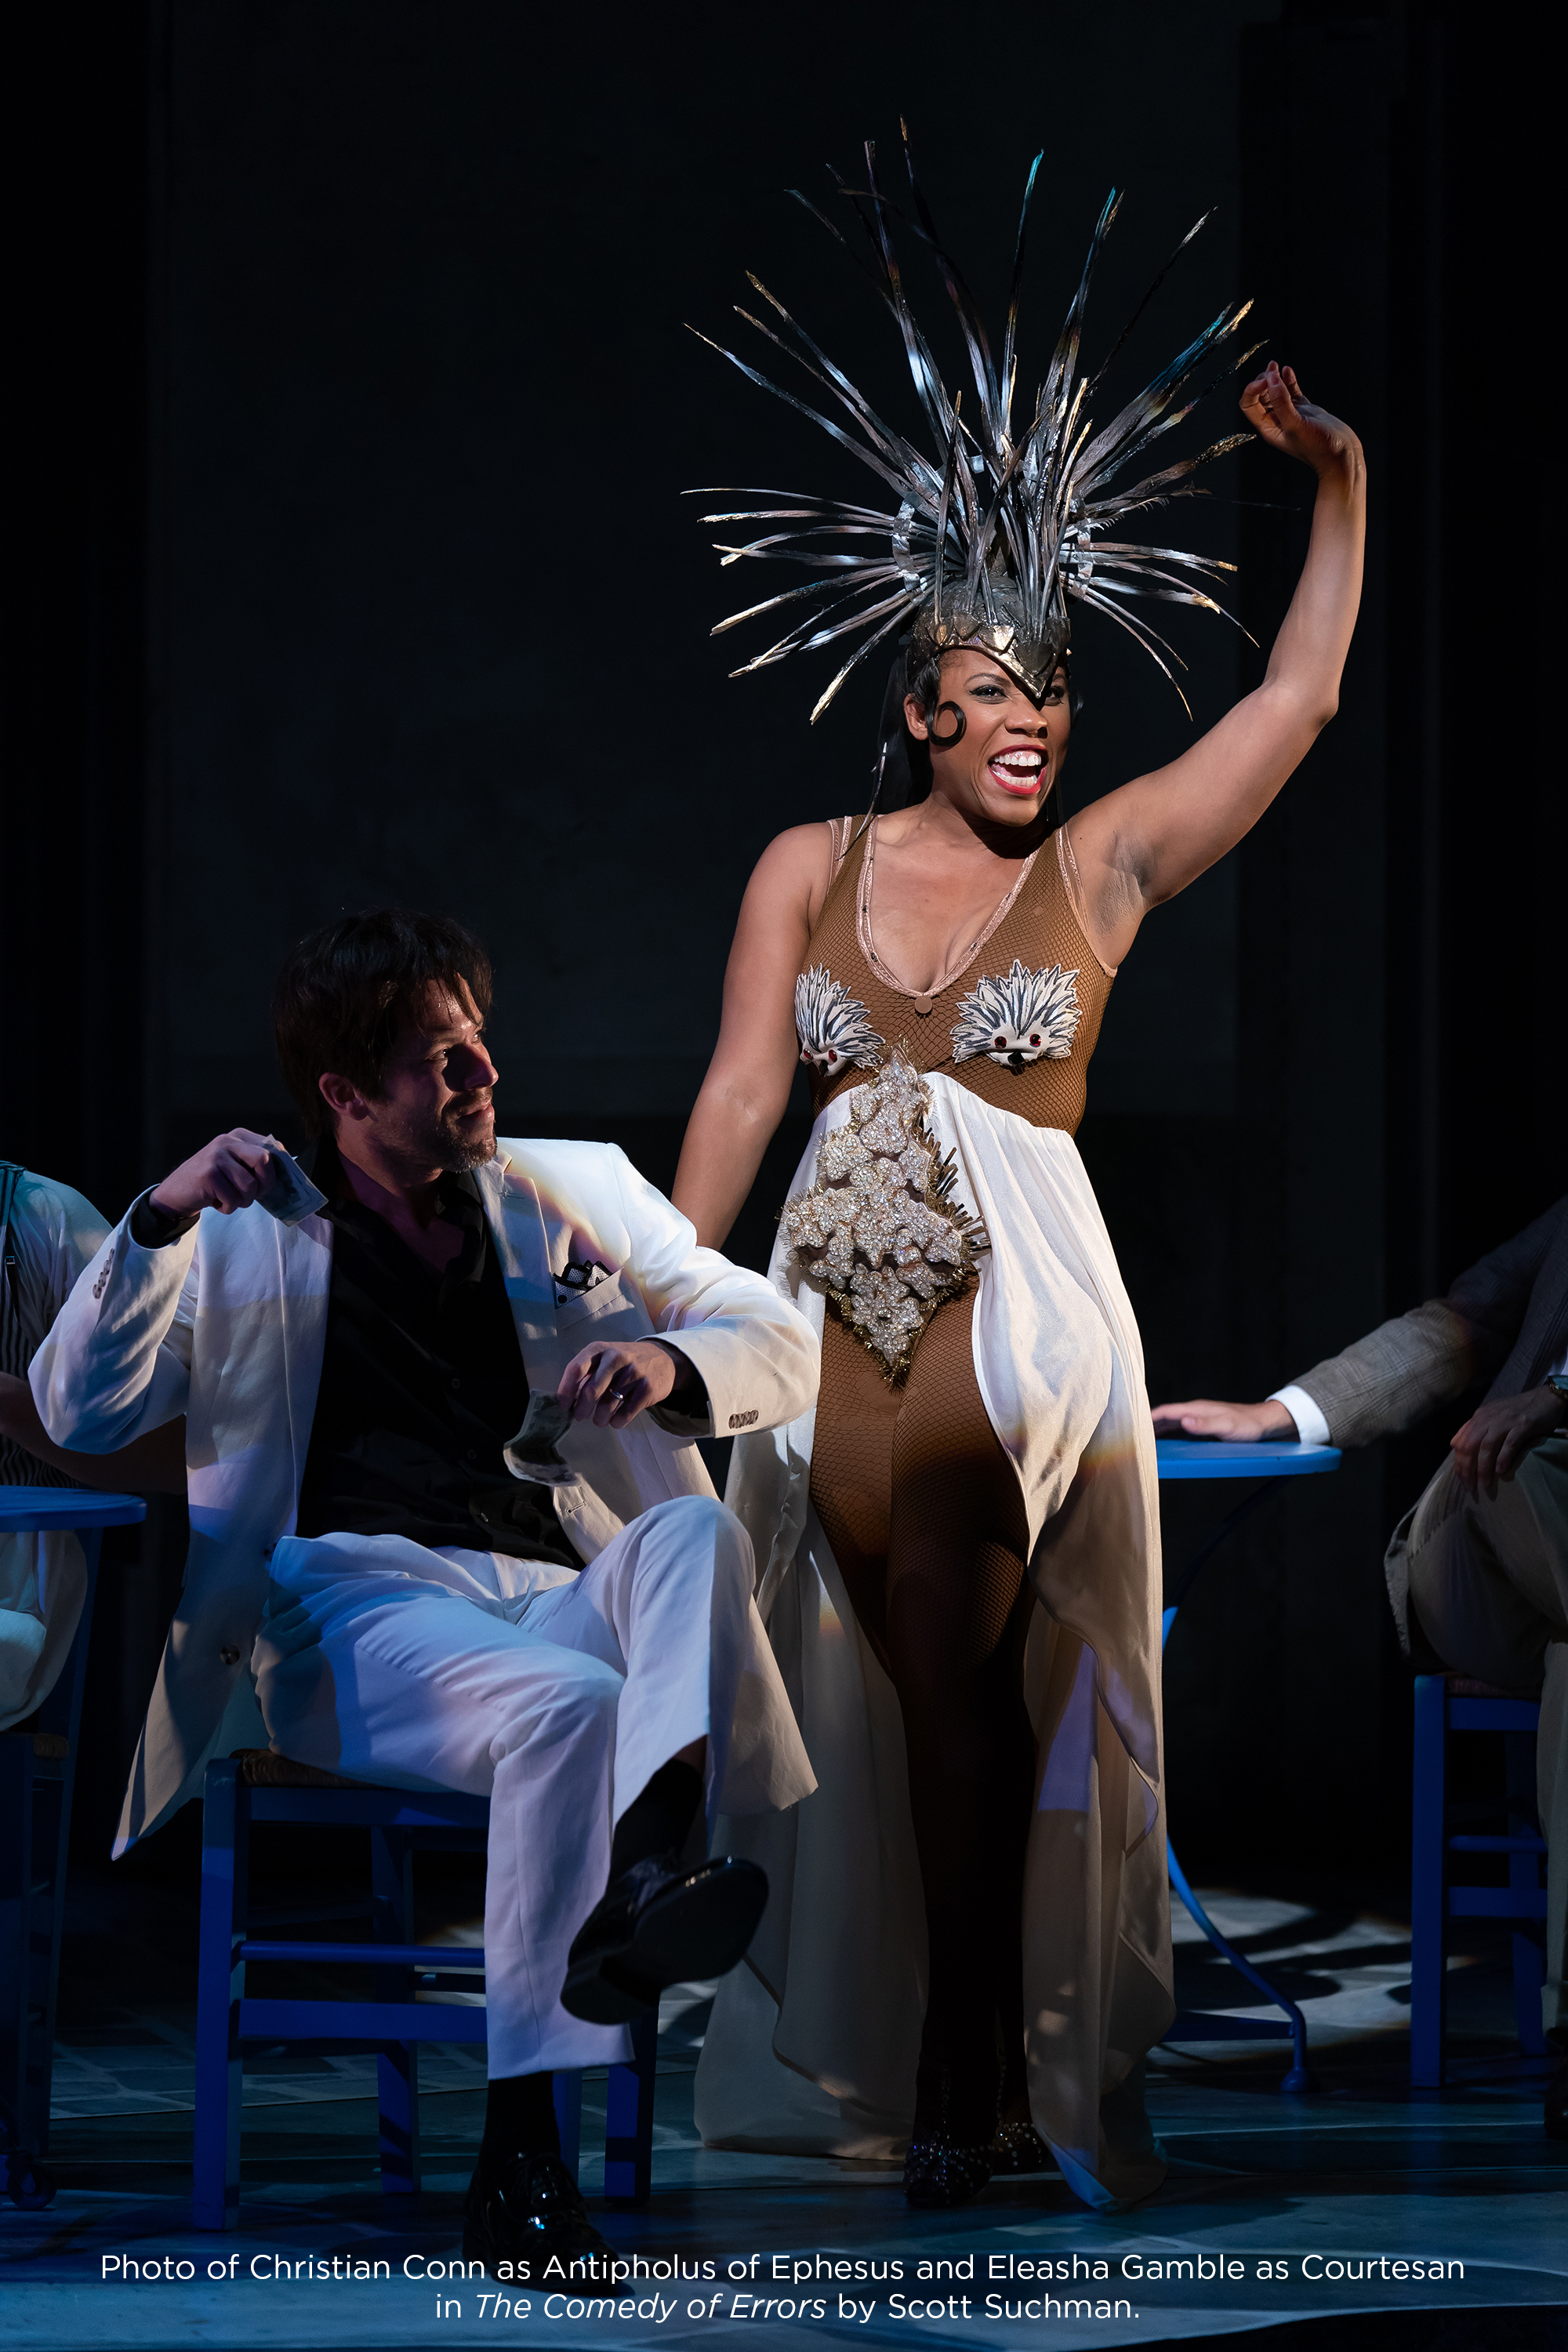 Photo of Christian Conn as Antipholus of Ephesus and Eleasha Gamble as Courtesan in The Comedy of Errors by Scott Suchman.